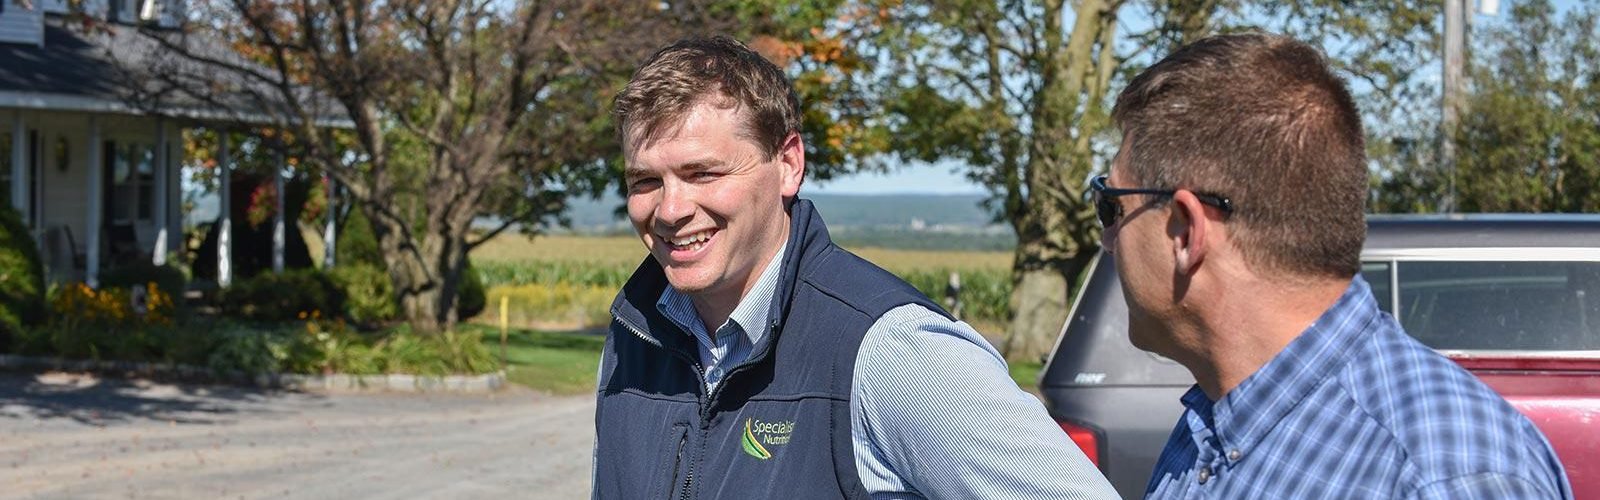 Nigel Condell joins the Specialist Nutrition Team